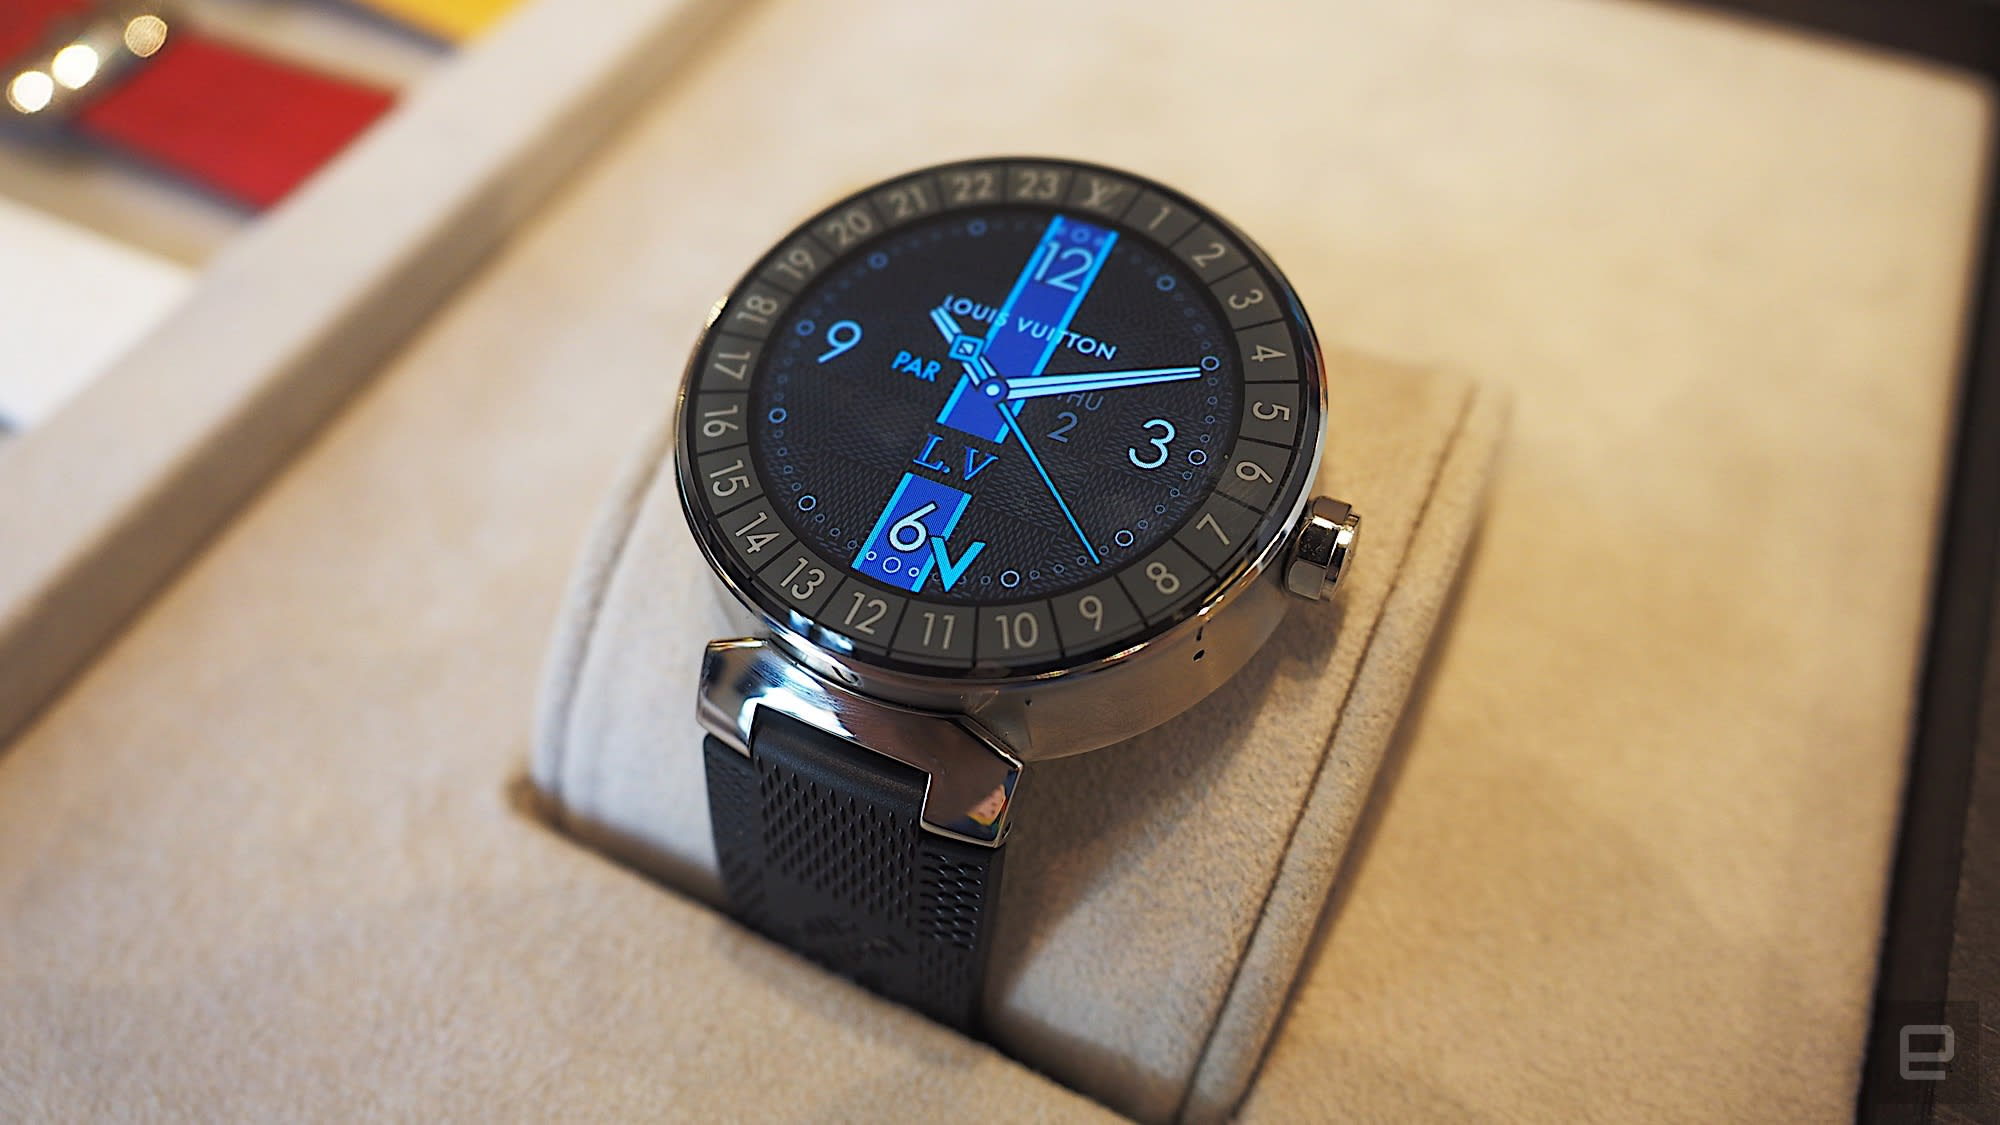 7b9596054b6c Louis Vuitton s smartwatch is an extravagant take on Android Wear